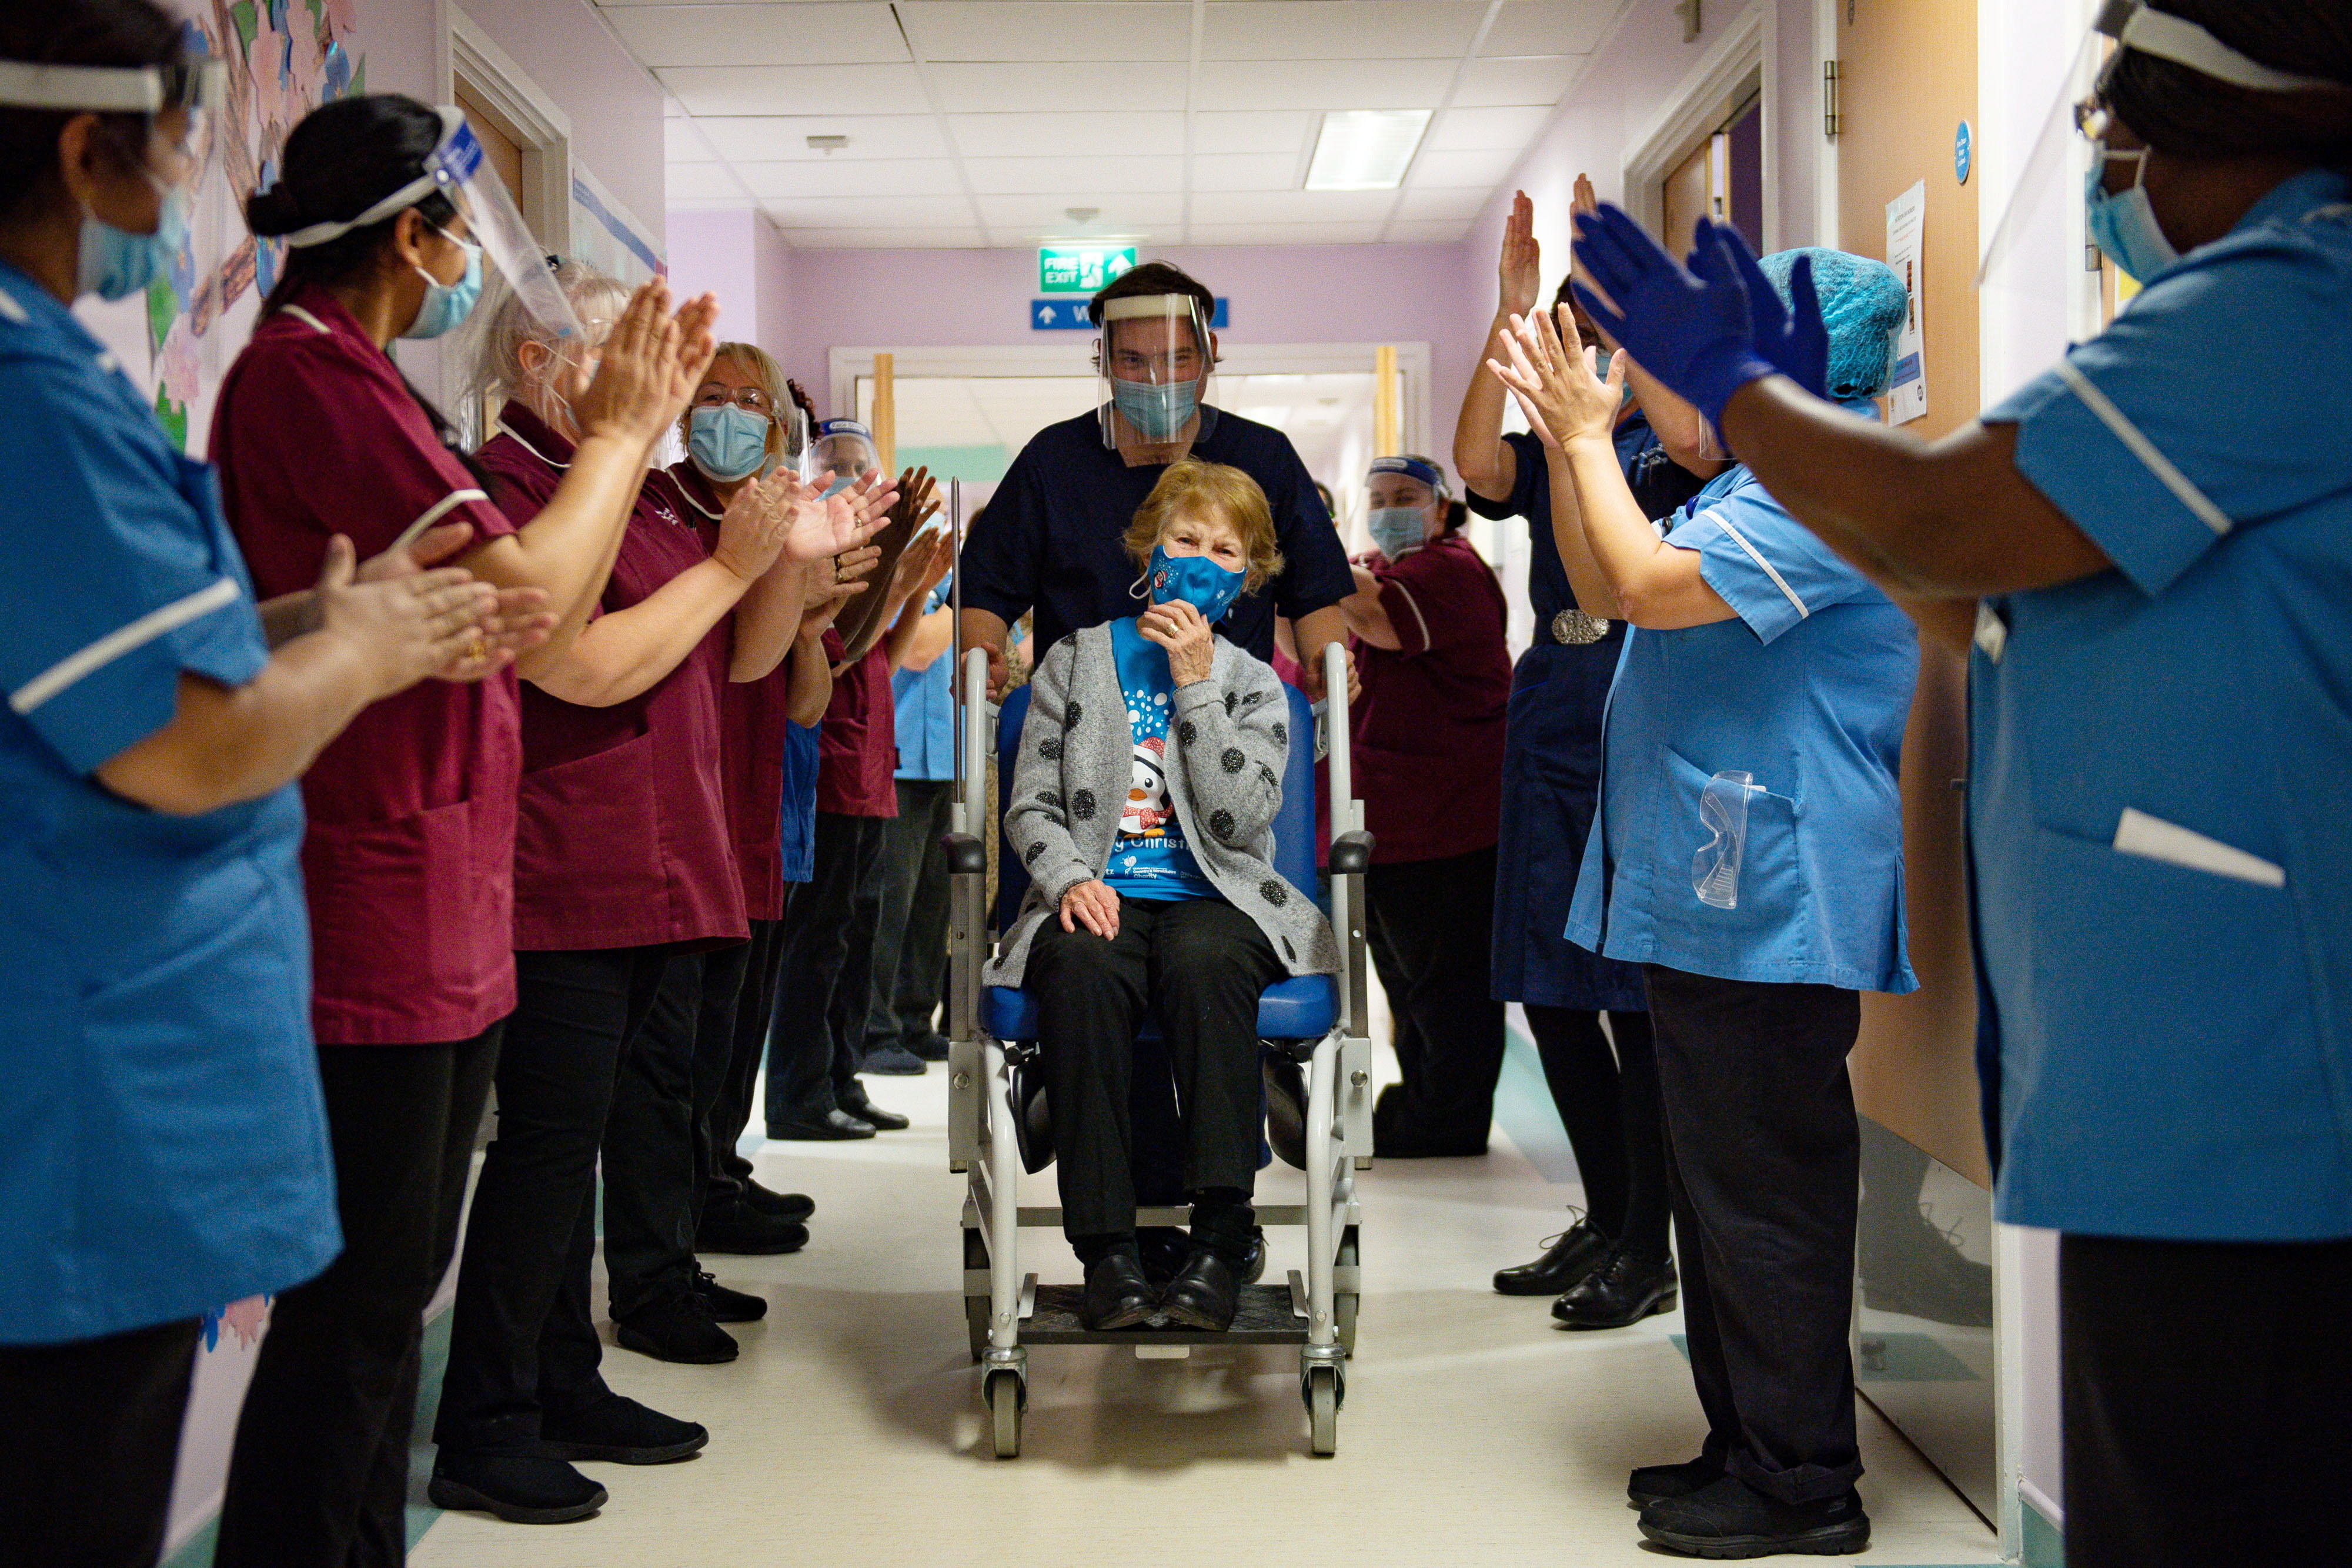 Margaret Keenan, 90, is applauded by staff as she returns to her ward after becoming the first person in Britain to receive the Pfizer/BioNTech  COVID-19 vaccine at University Hospital, at the start of the largest ever immunisation programme in the British history, in Coventry, Britain December 8, 2020. Britain is the first country in the world to start vaccinating people with the Pfizer/BioNTech jab. Jacob King/Pool via REUTERS - RC2XIK9QQQM7